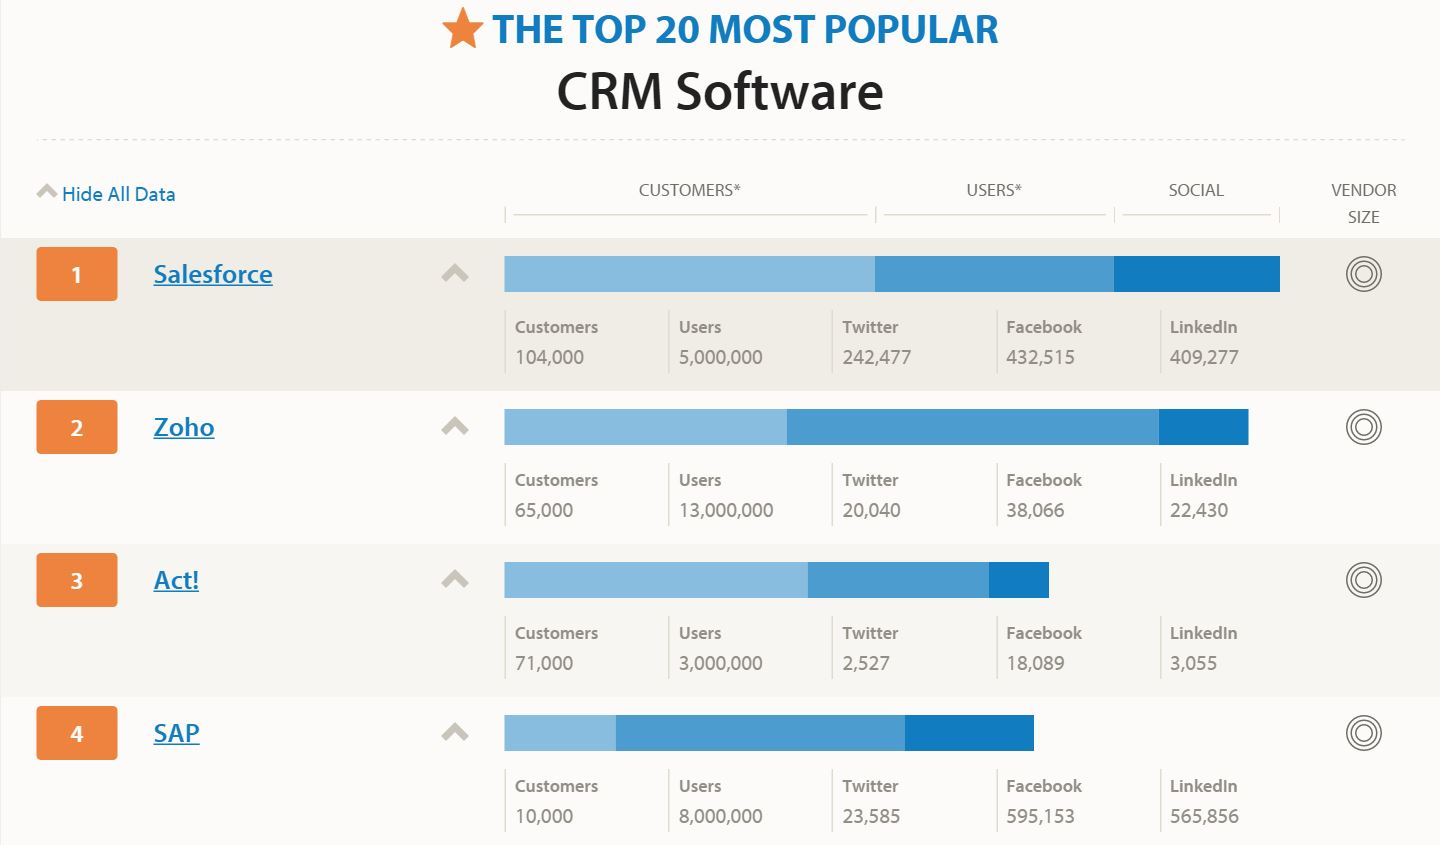 What is the most popular CRM?